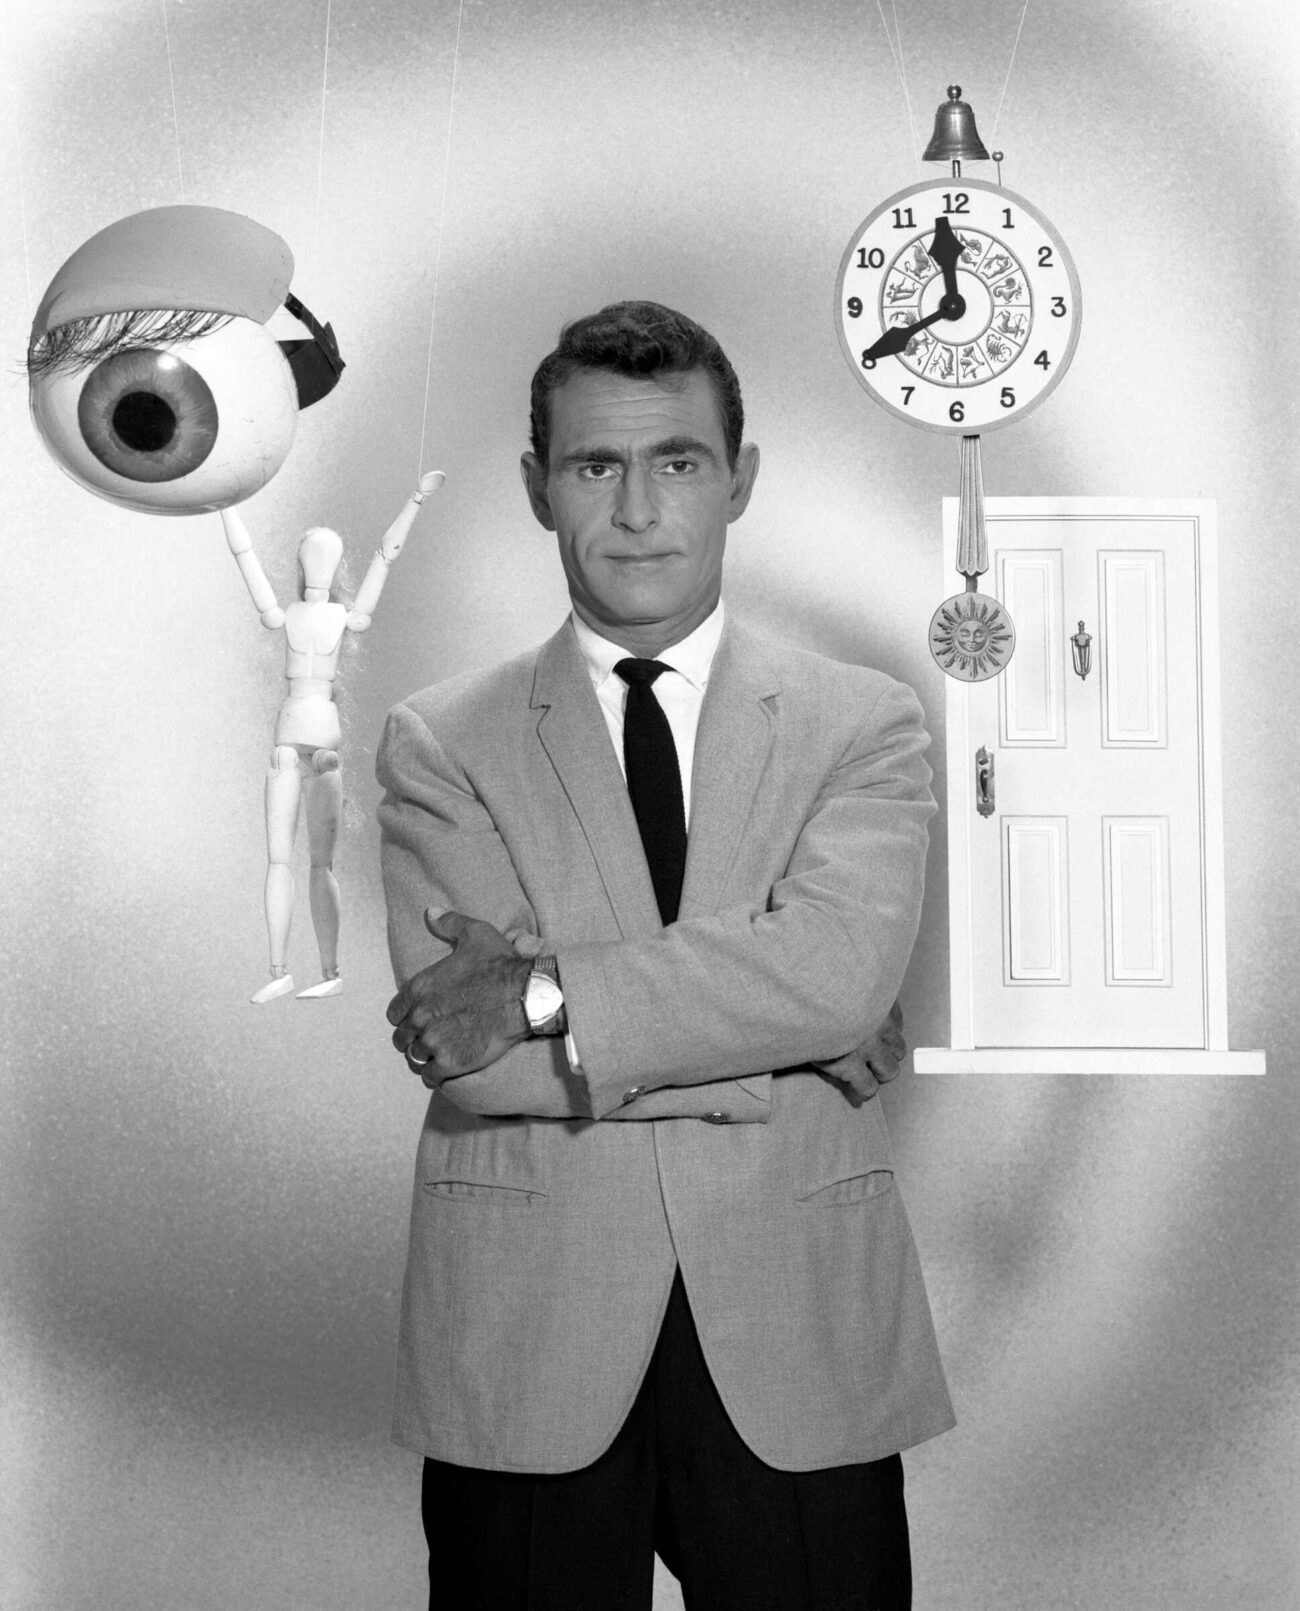 You're traveling to a new dimension in each episode. Next stop: 'The Twilight Zone'. Check out our list of the very best episodes of this iconic series.